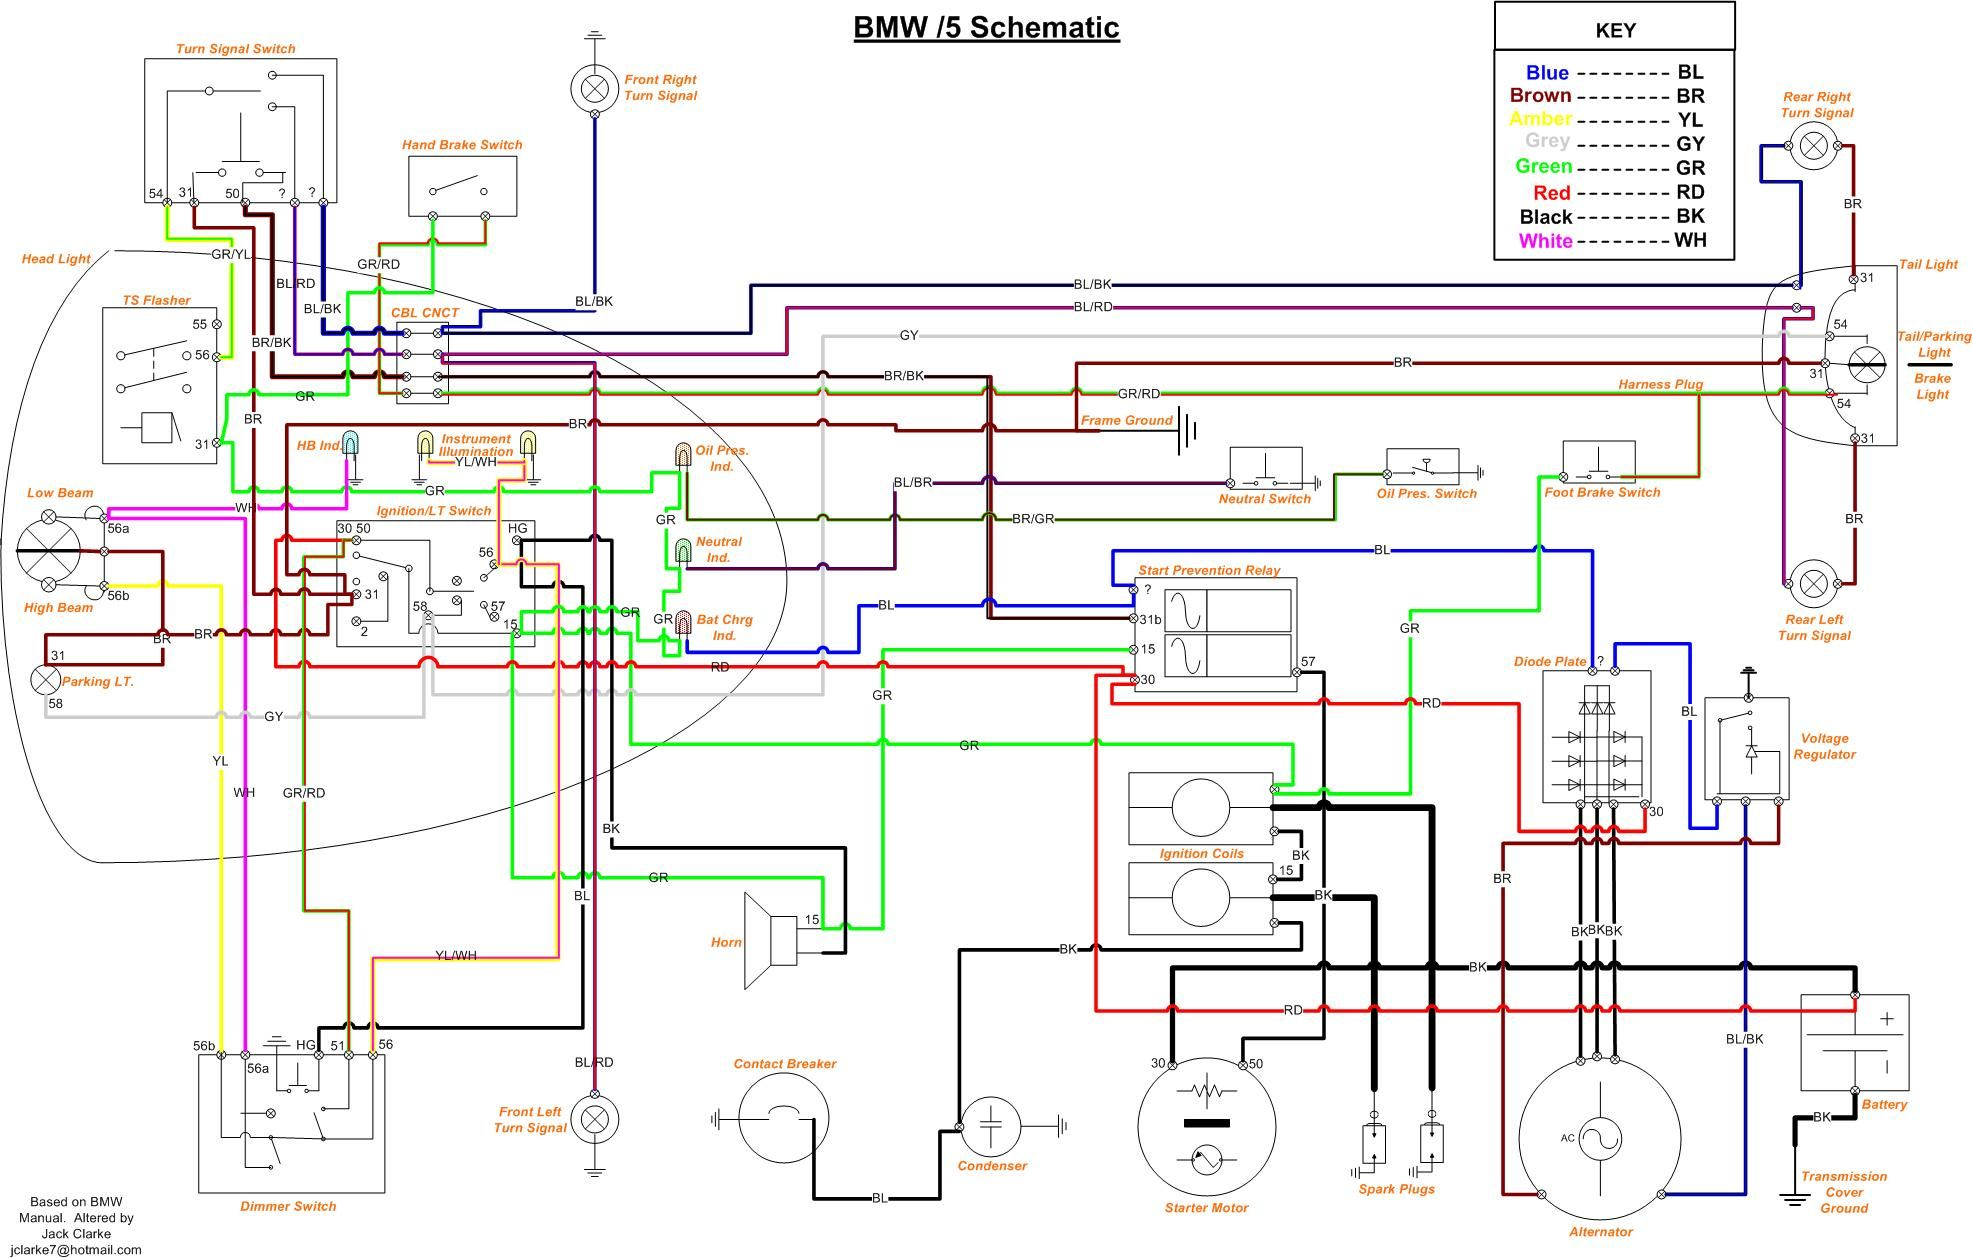 indispensable wire diagram when restoring thanks jake clarke bmw electrical wiring diagrams for dummies clarke wiring diagram [ 1972 x 1258 Pixel ]